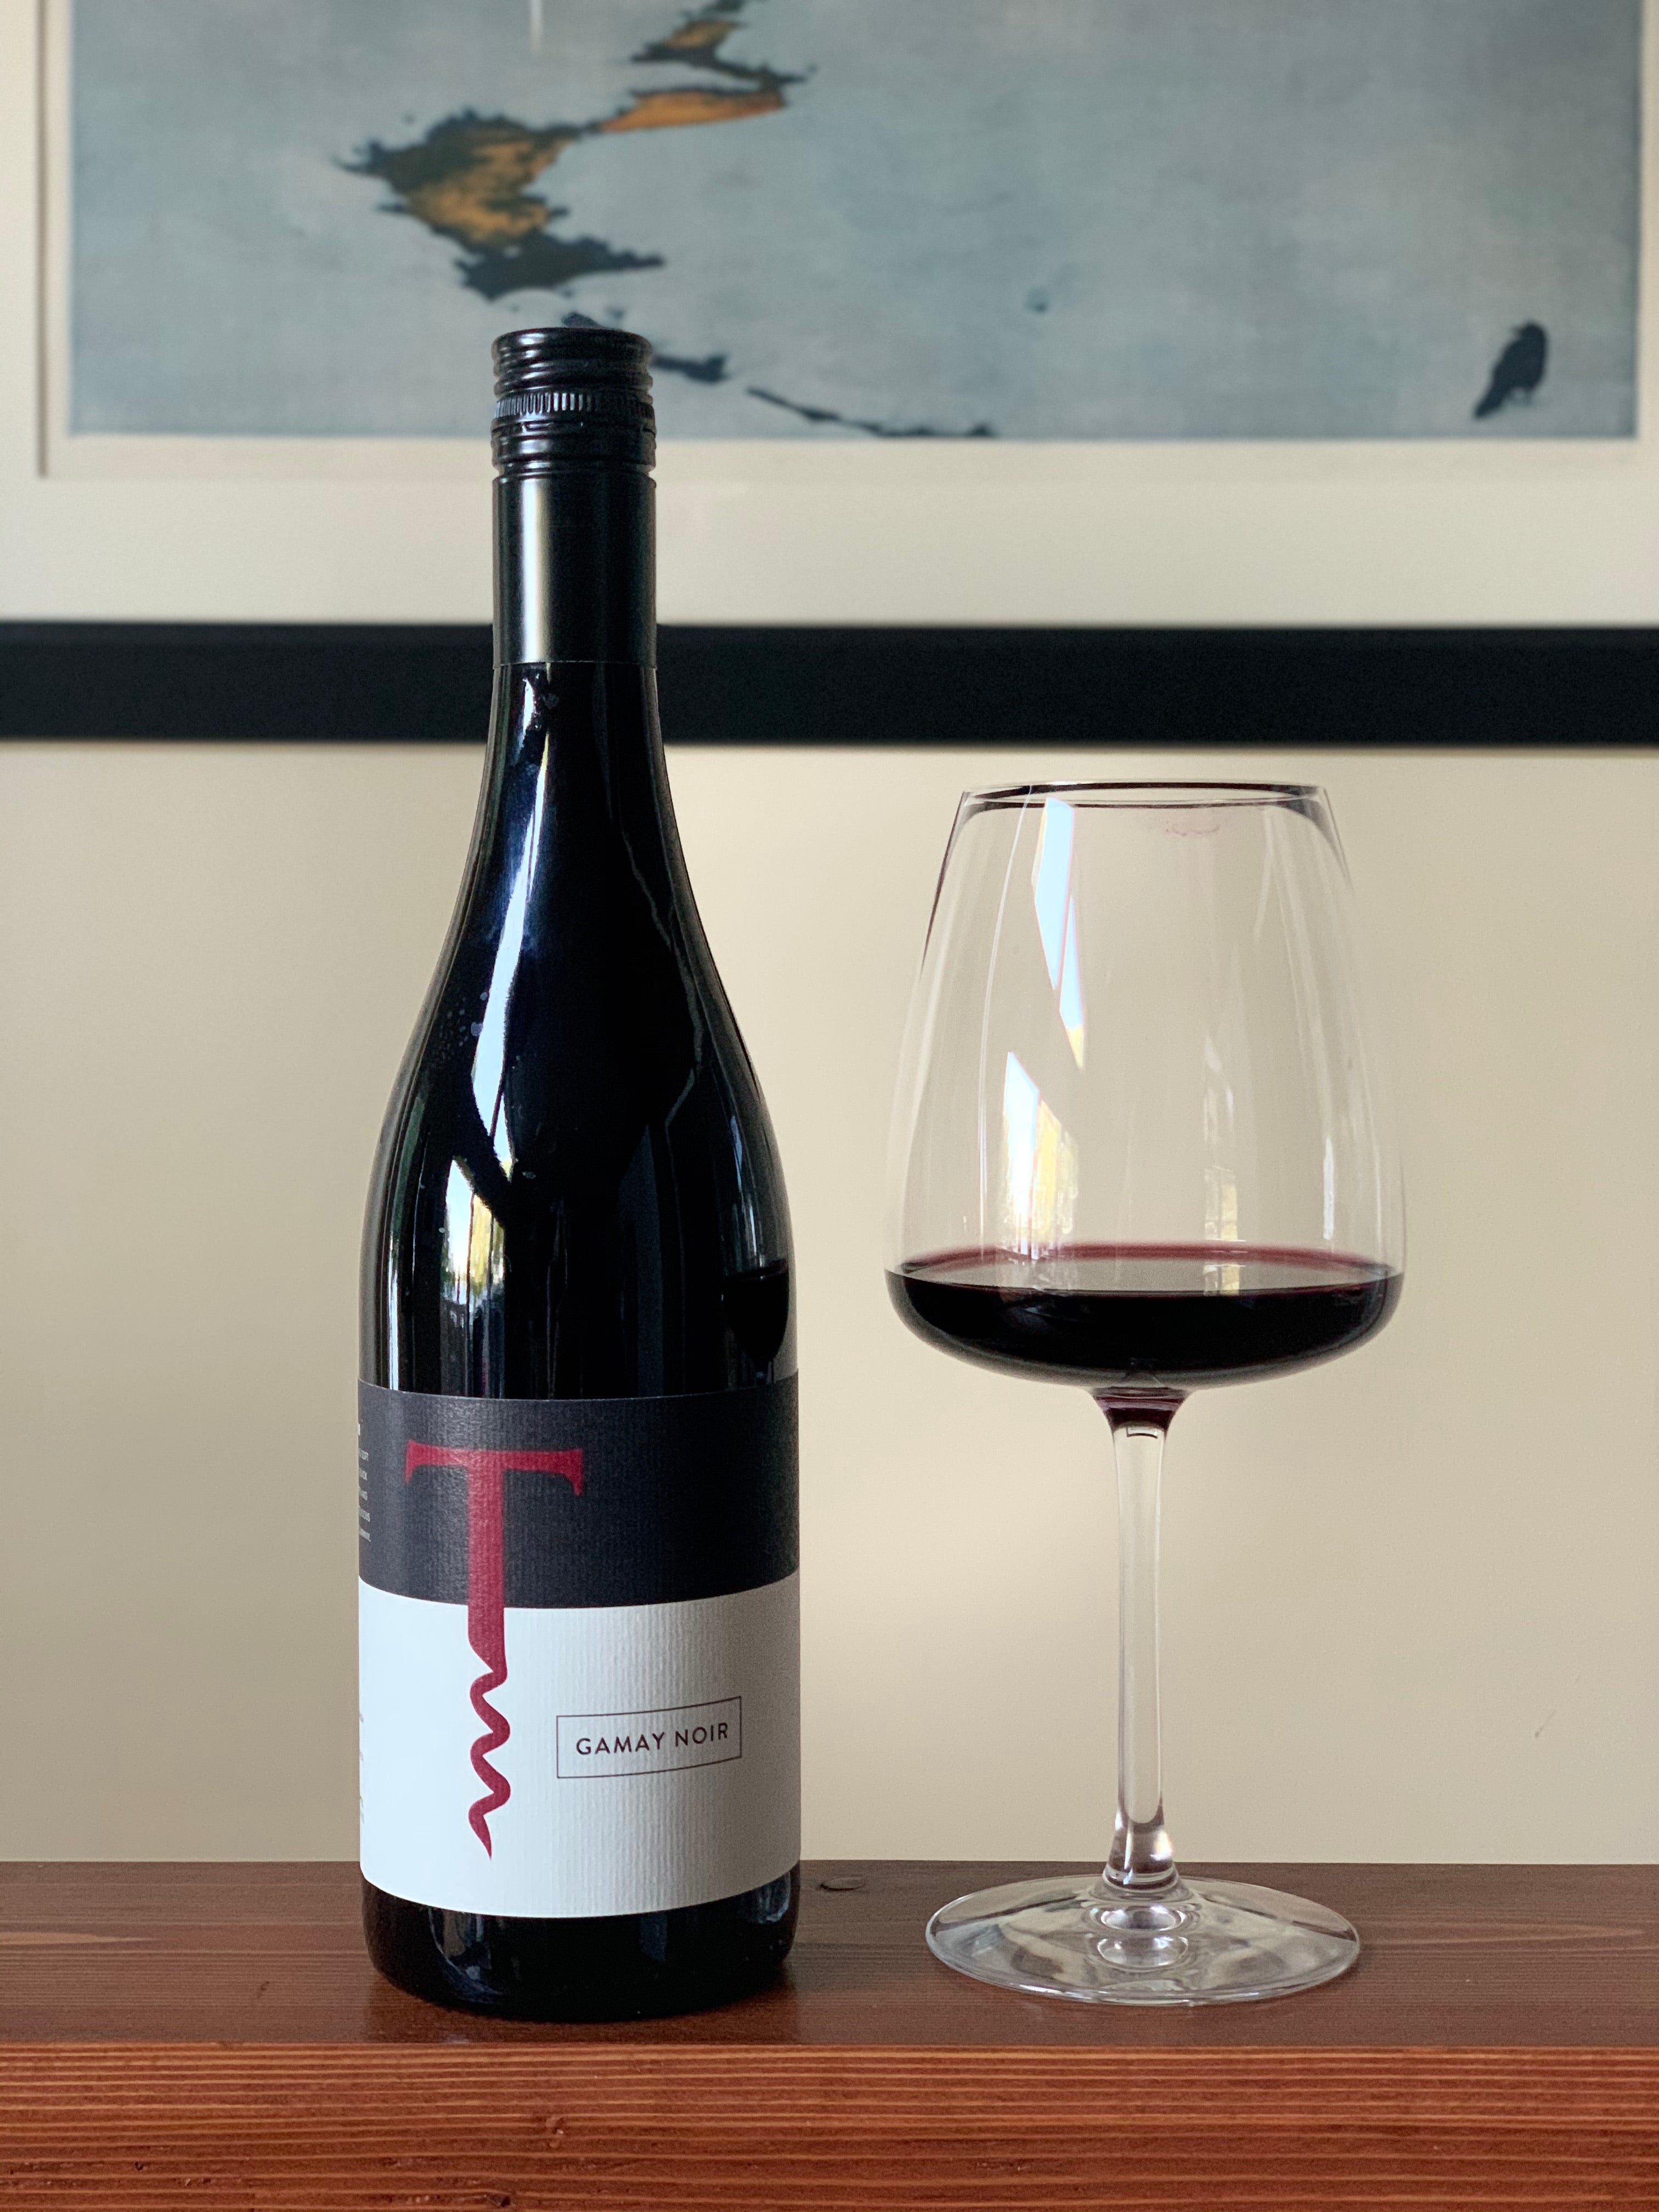 Gamay Noir bottle and glass